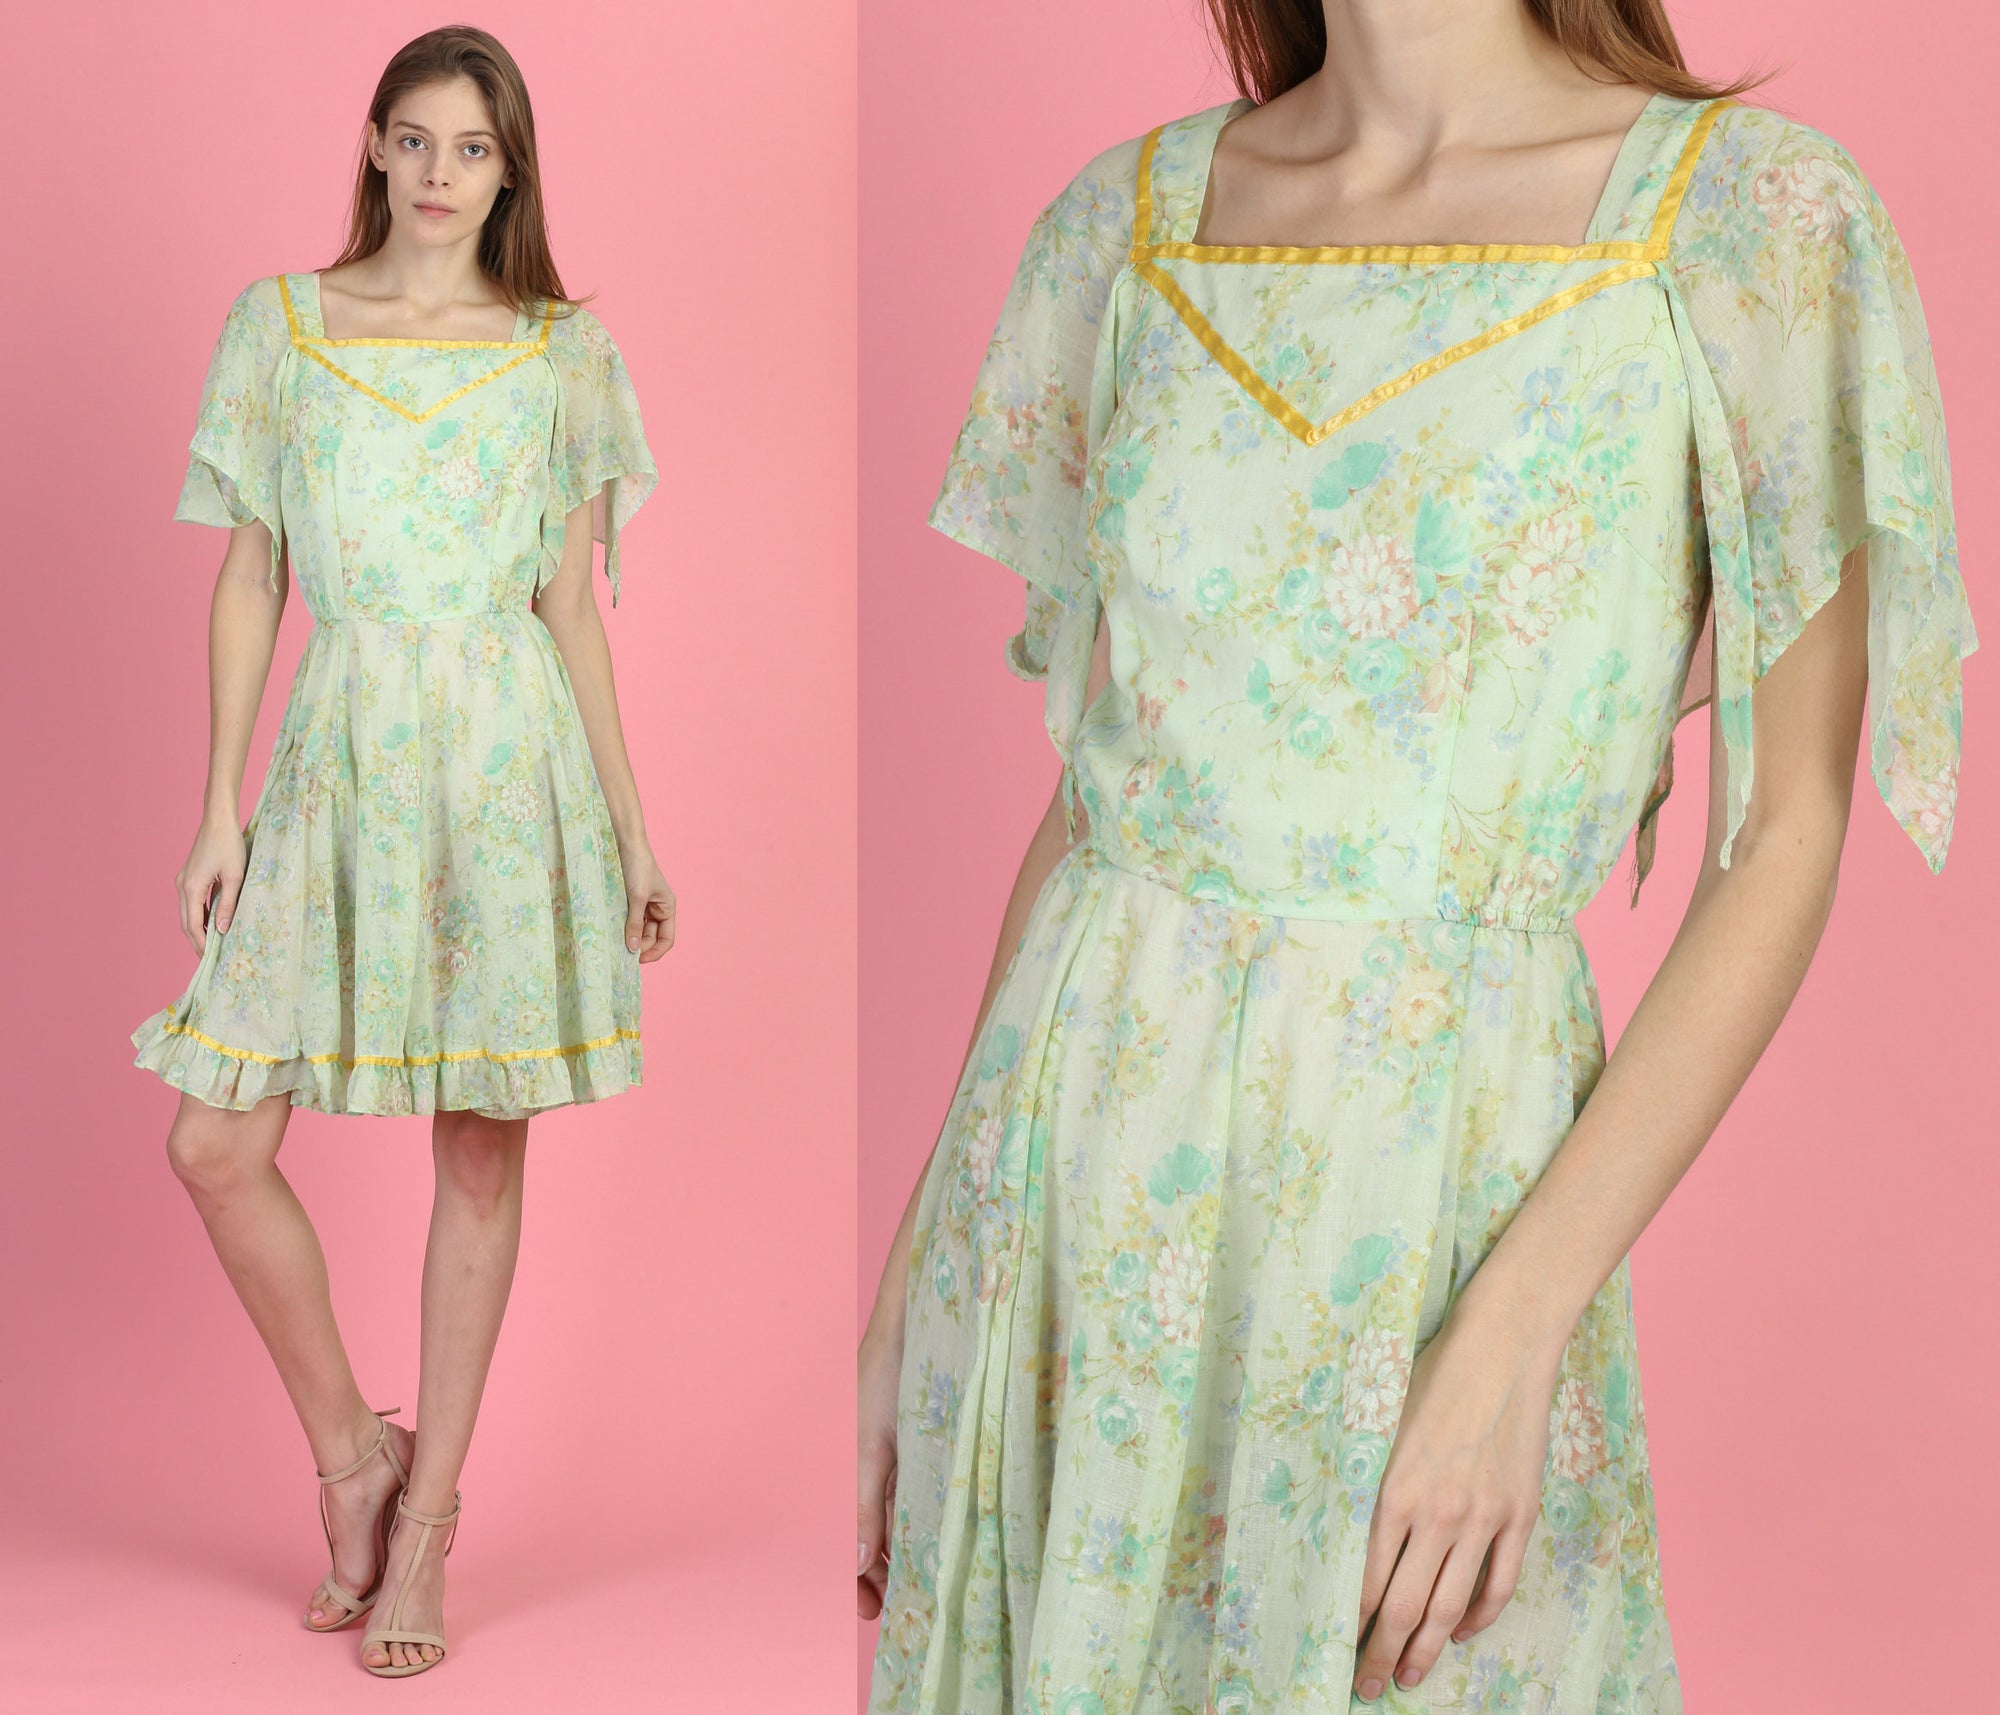 70s Boho Floral Flutter Sleeve Dress - Extra Small